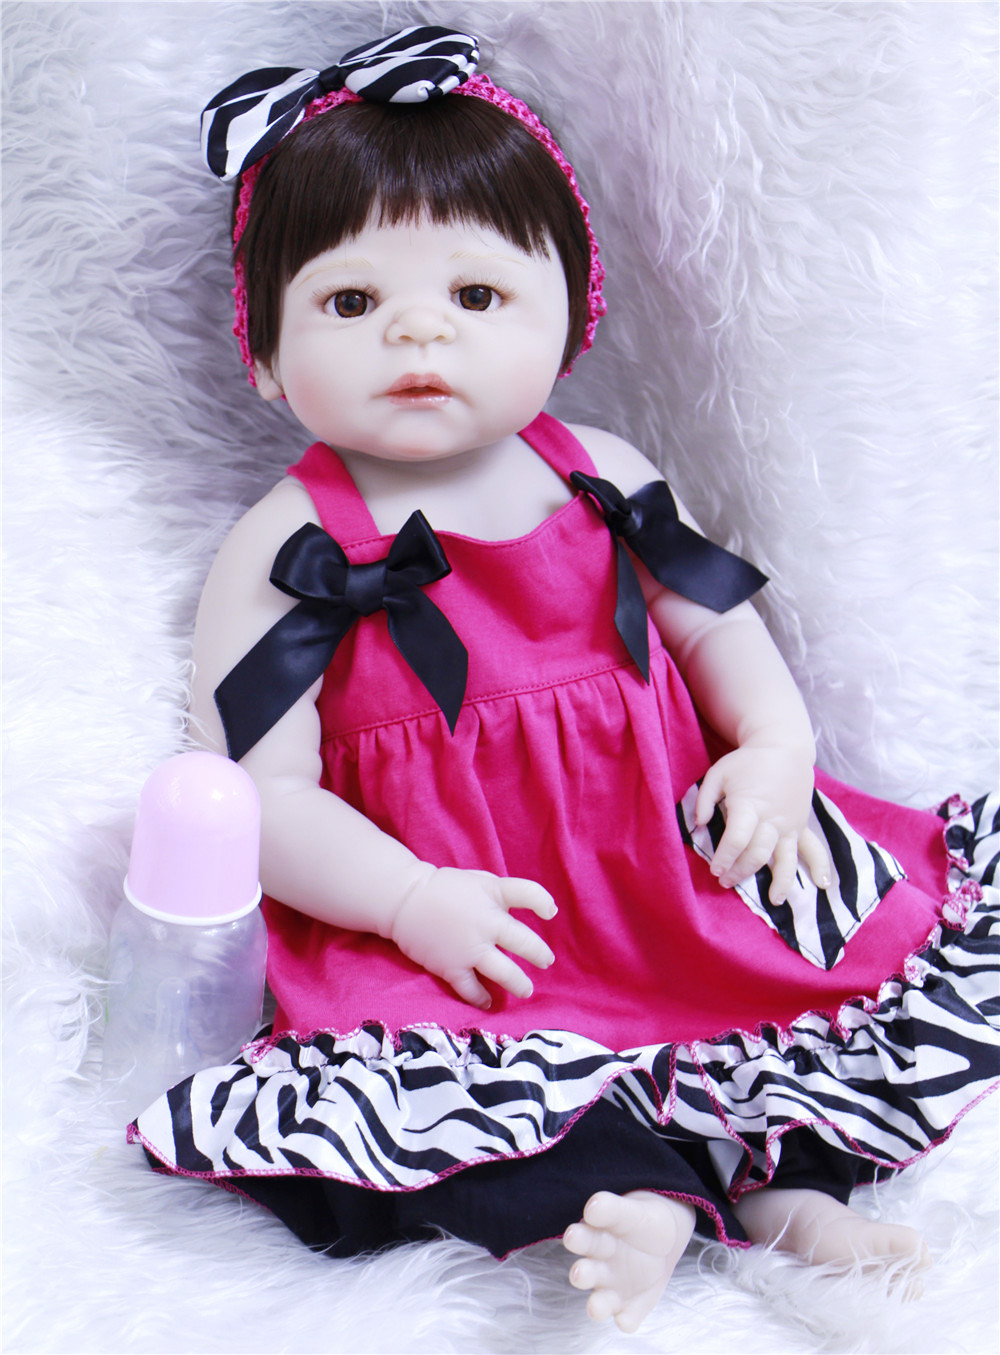 22 Lifelike bebe alive reborn bonecas real full body silicone vinyl Reborn Baby girl Doll with clothes Pacifier bottle NPK22 Lifelike bebe alive reborn bonecas real full body silicone vinyl Reborn Baby girl Doll with clothes Pacifier bottle NPK